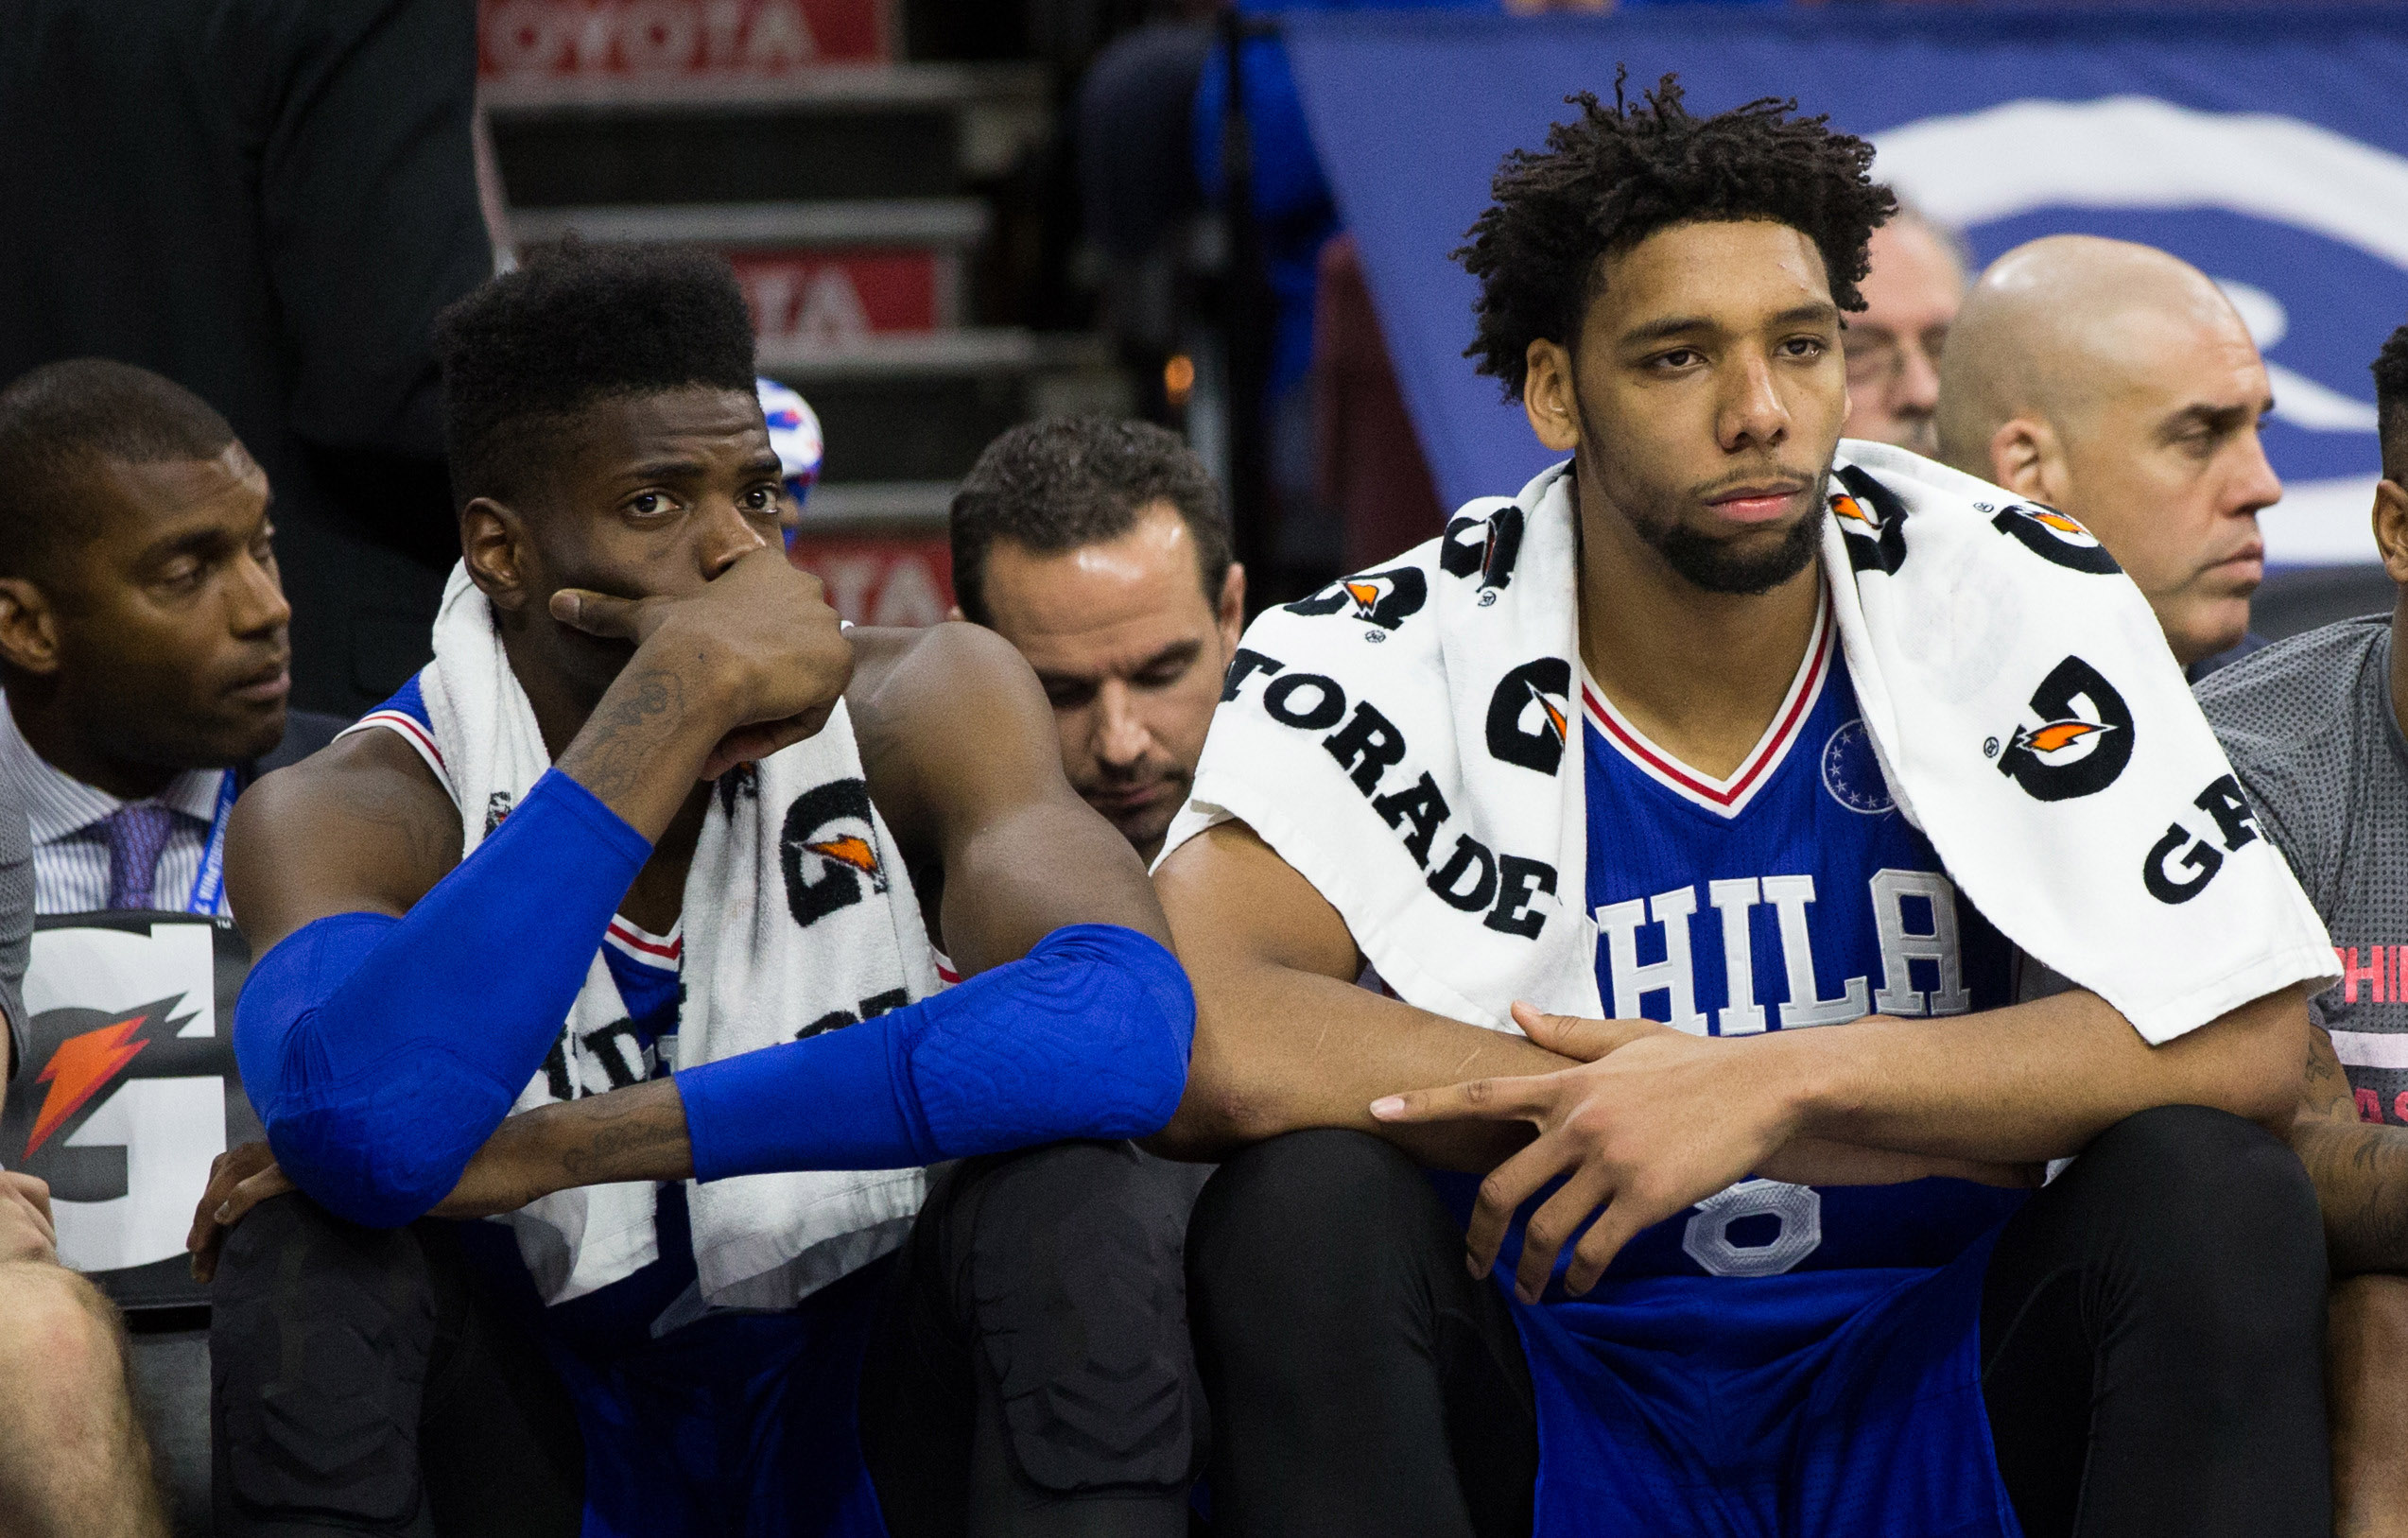 Oct 30, 2015; Philadelphia, PA, USA; Philadelphia 76ers center Nerlens Noel (left) and center Jahlil Okafor (right) watch from the bench during the final minutes of a game against the Utah Jazz at Wells Fargo Center. The Utah Jazz won 99-71. Mandatory Credit: Bill Streicher-USA TODAY Sports